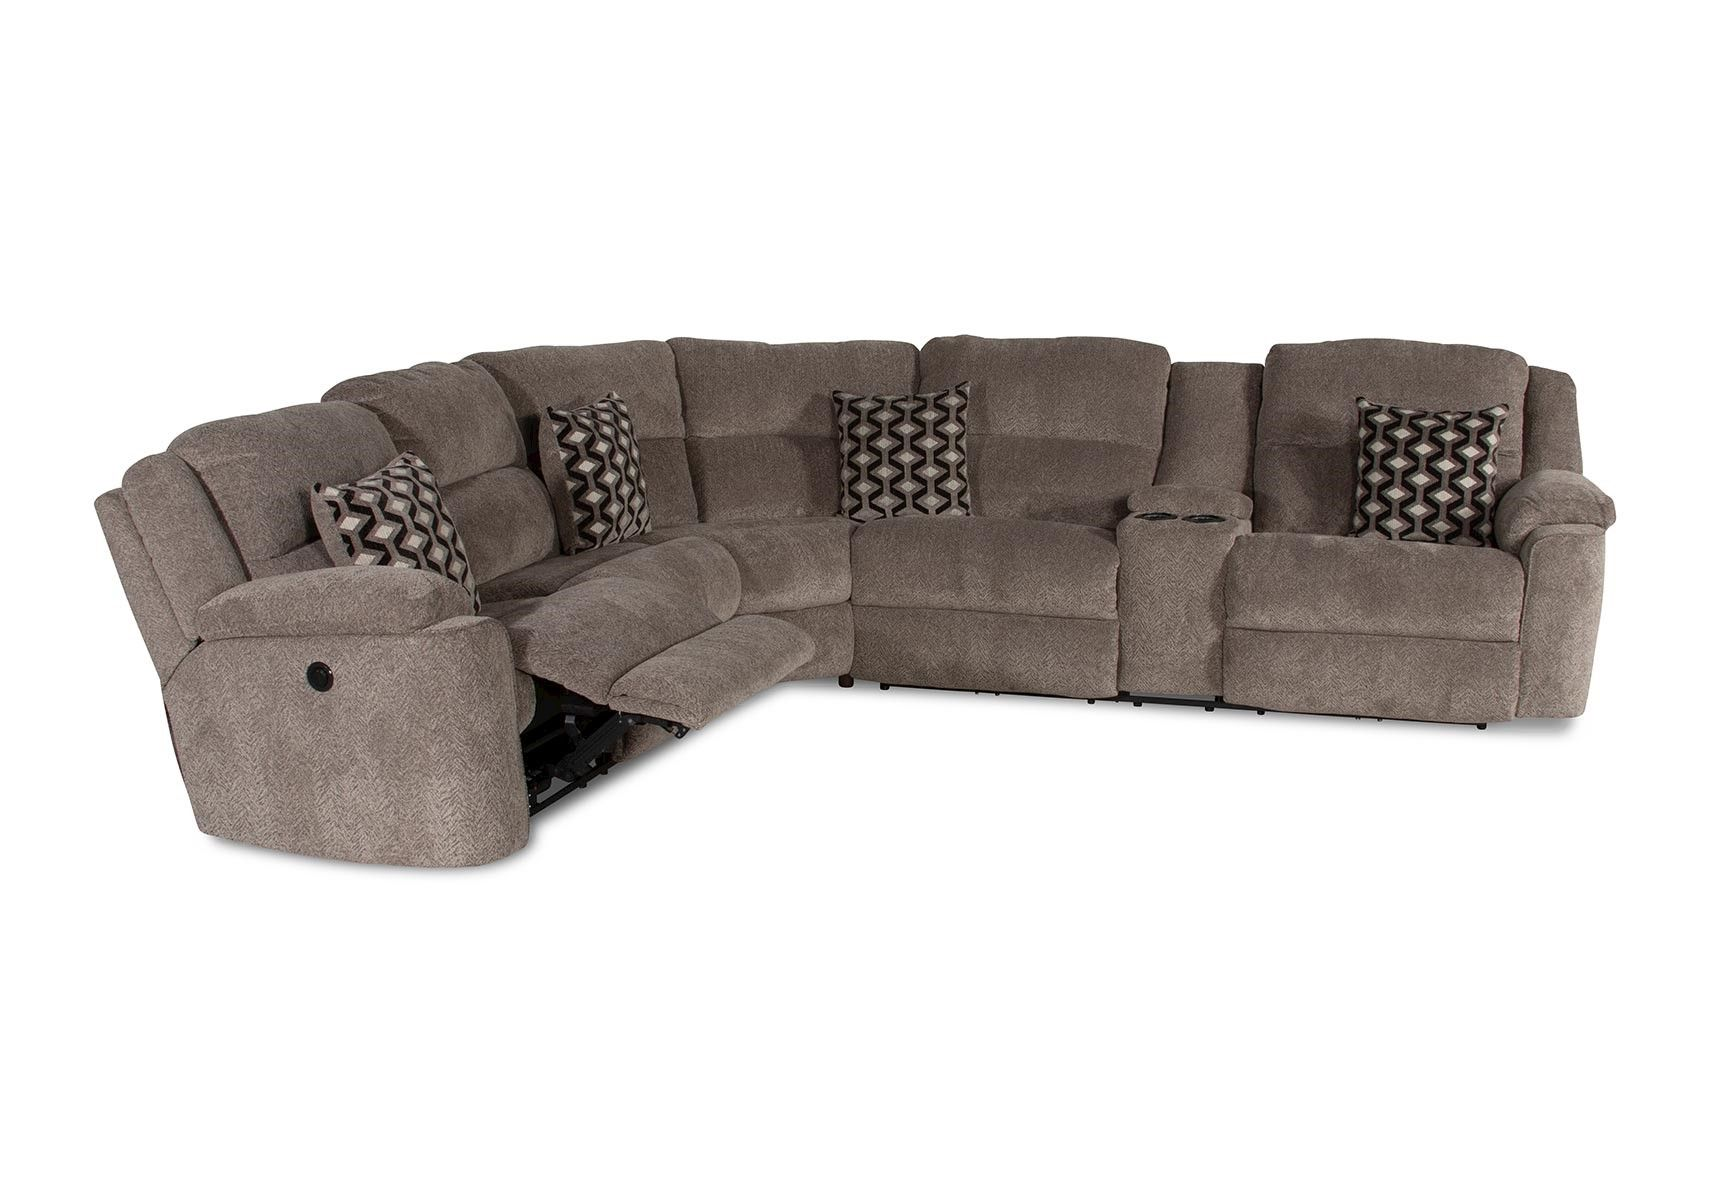 Amazing Lacks Catalina 3 Pc Reclining Sectional With Power Pdpeps Interior Chair Design Pdpepsorg